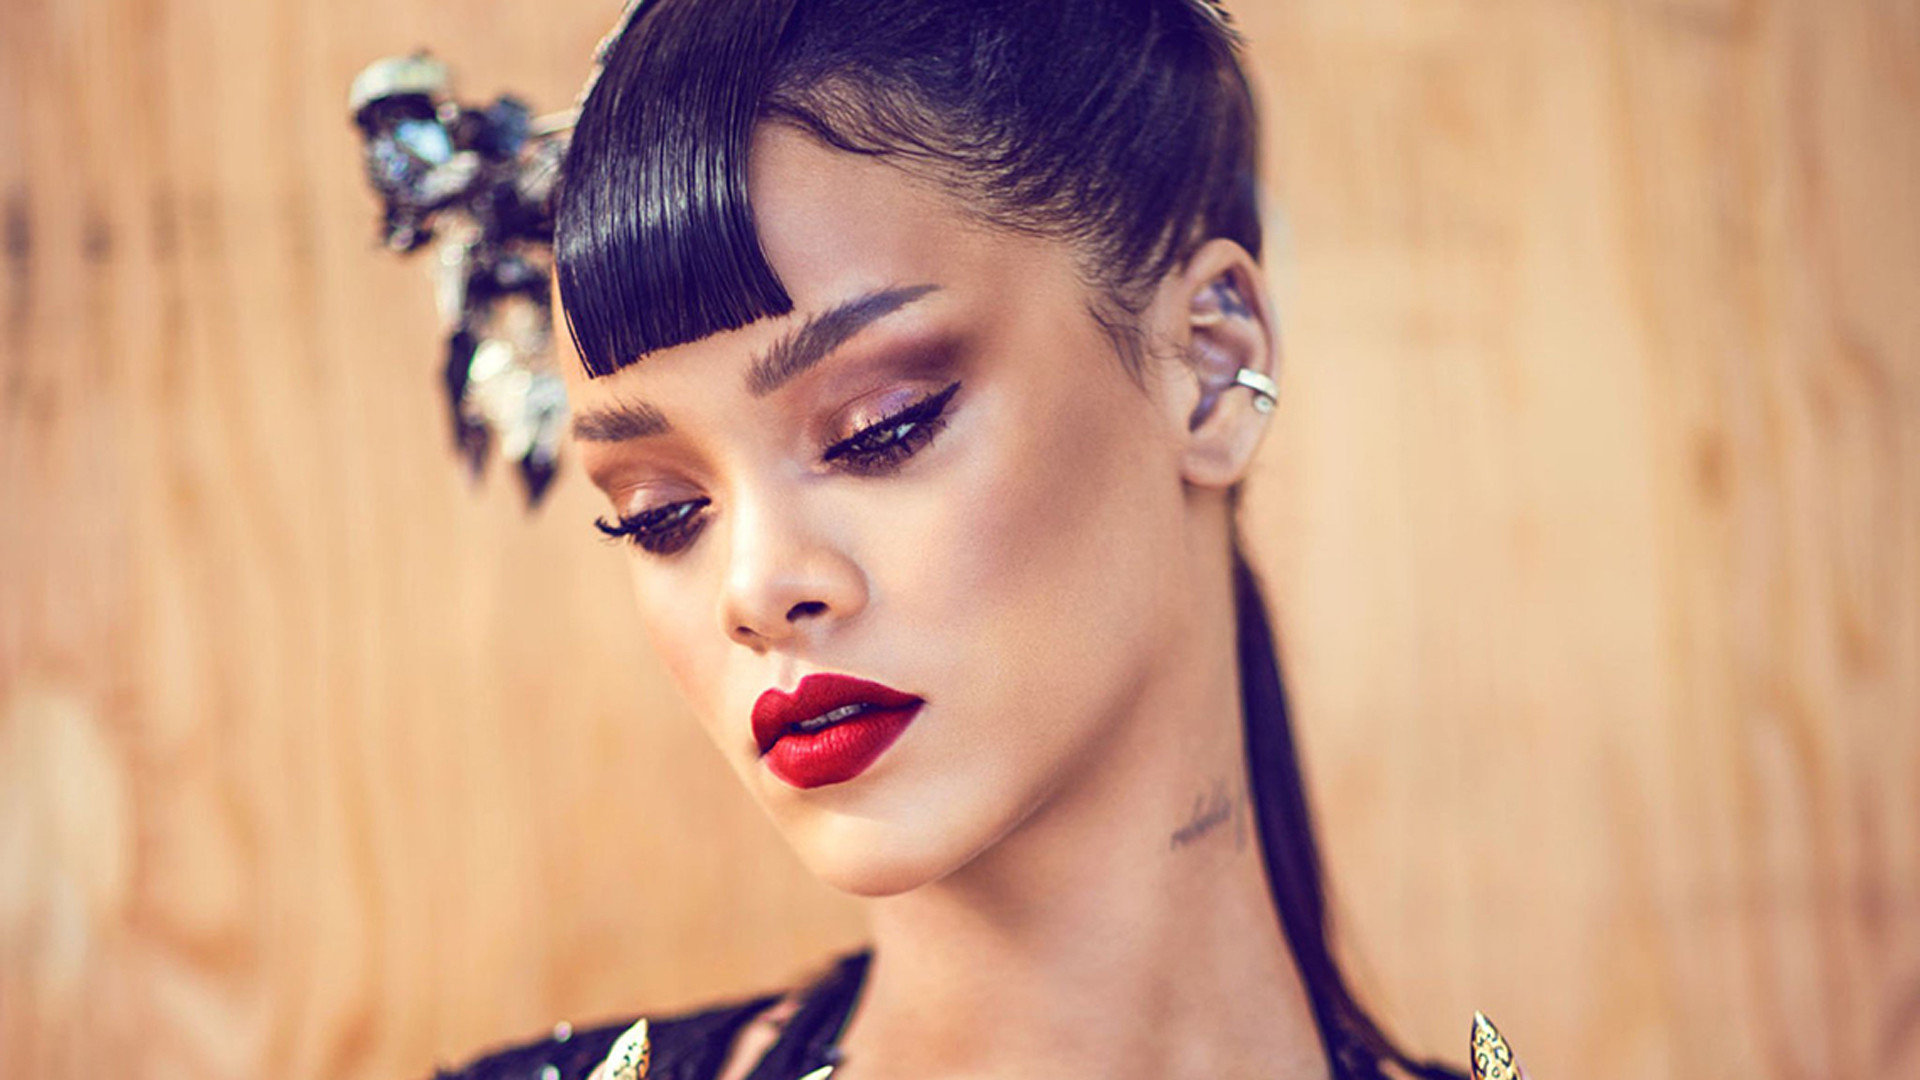 rihanna hairstyle wallpaper 65524